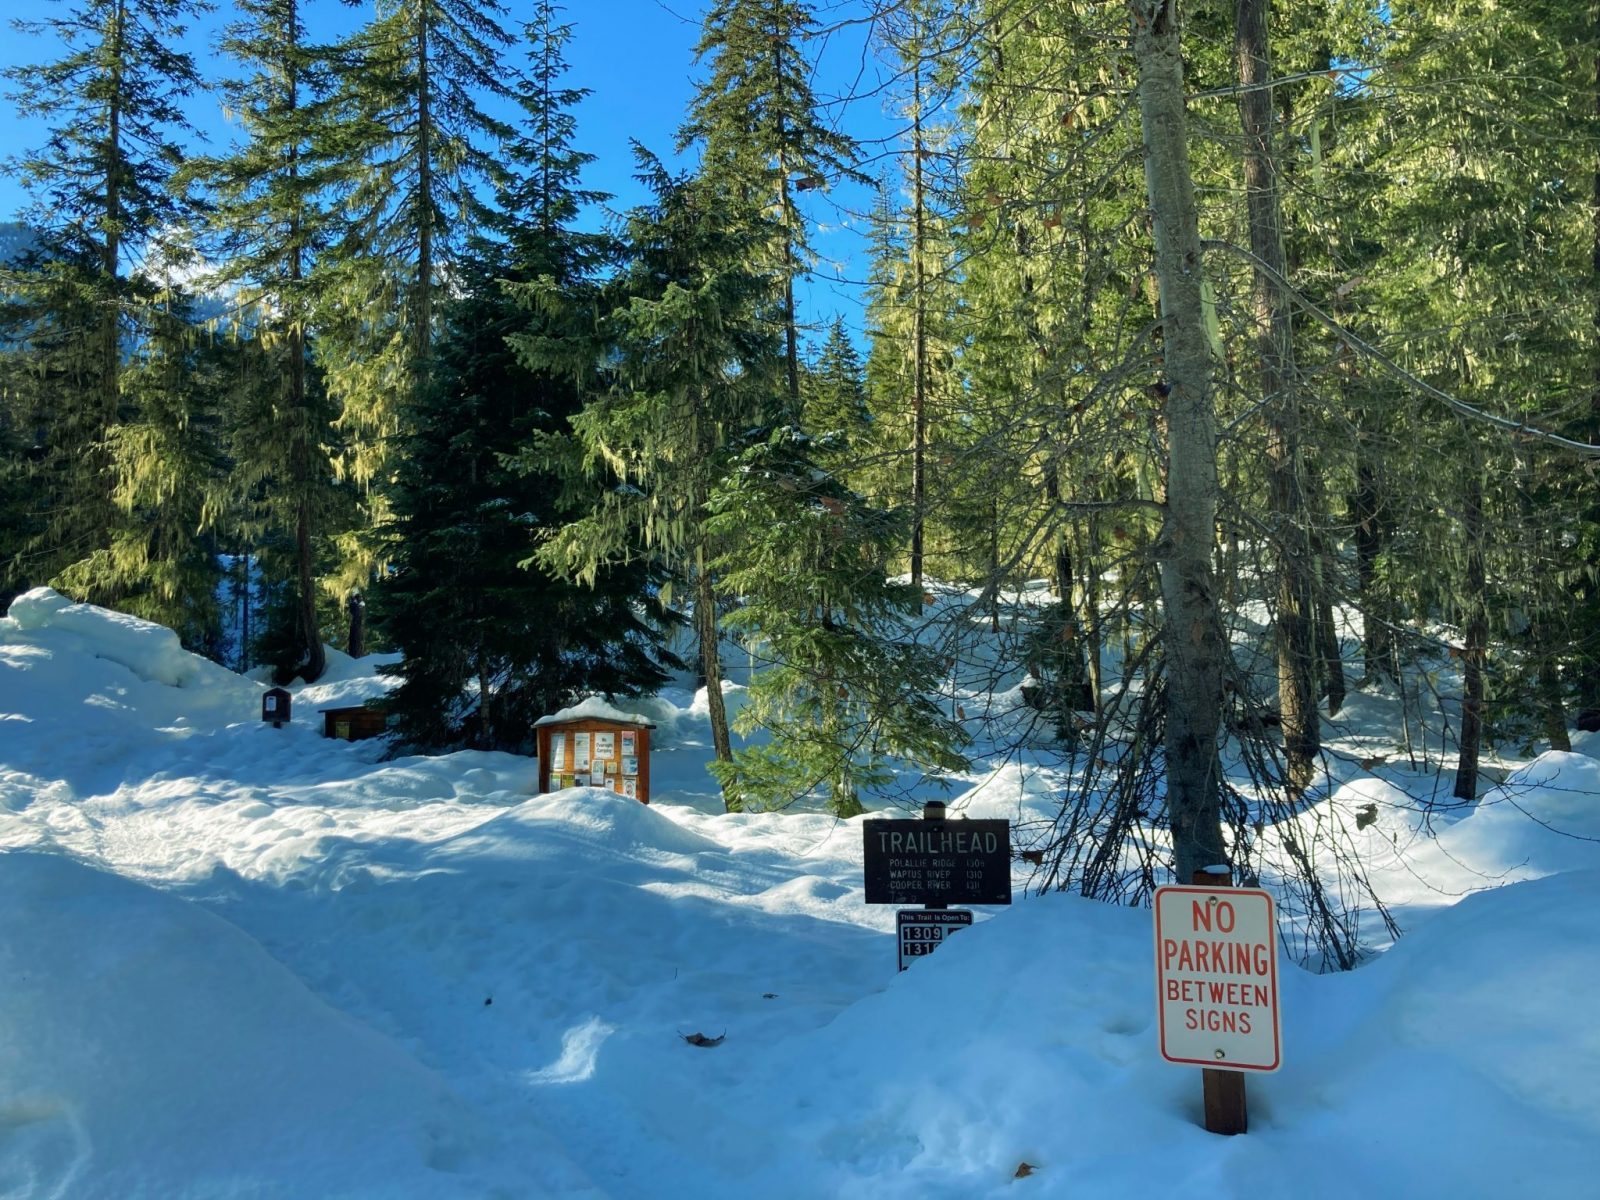 The salmon la sac trailhead, a forested trailhead in winter with lots of snow. There are several signs, including a no parking sign, a trailhead sign and a board with many announcements